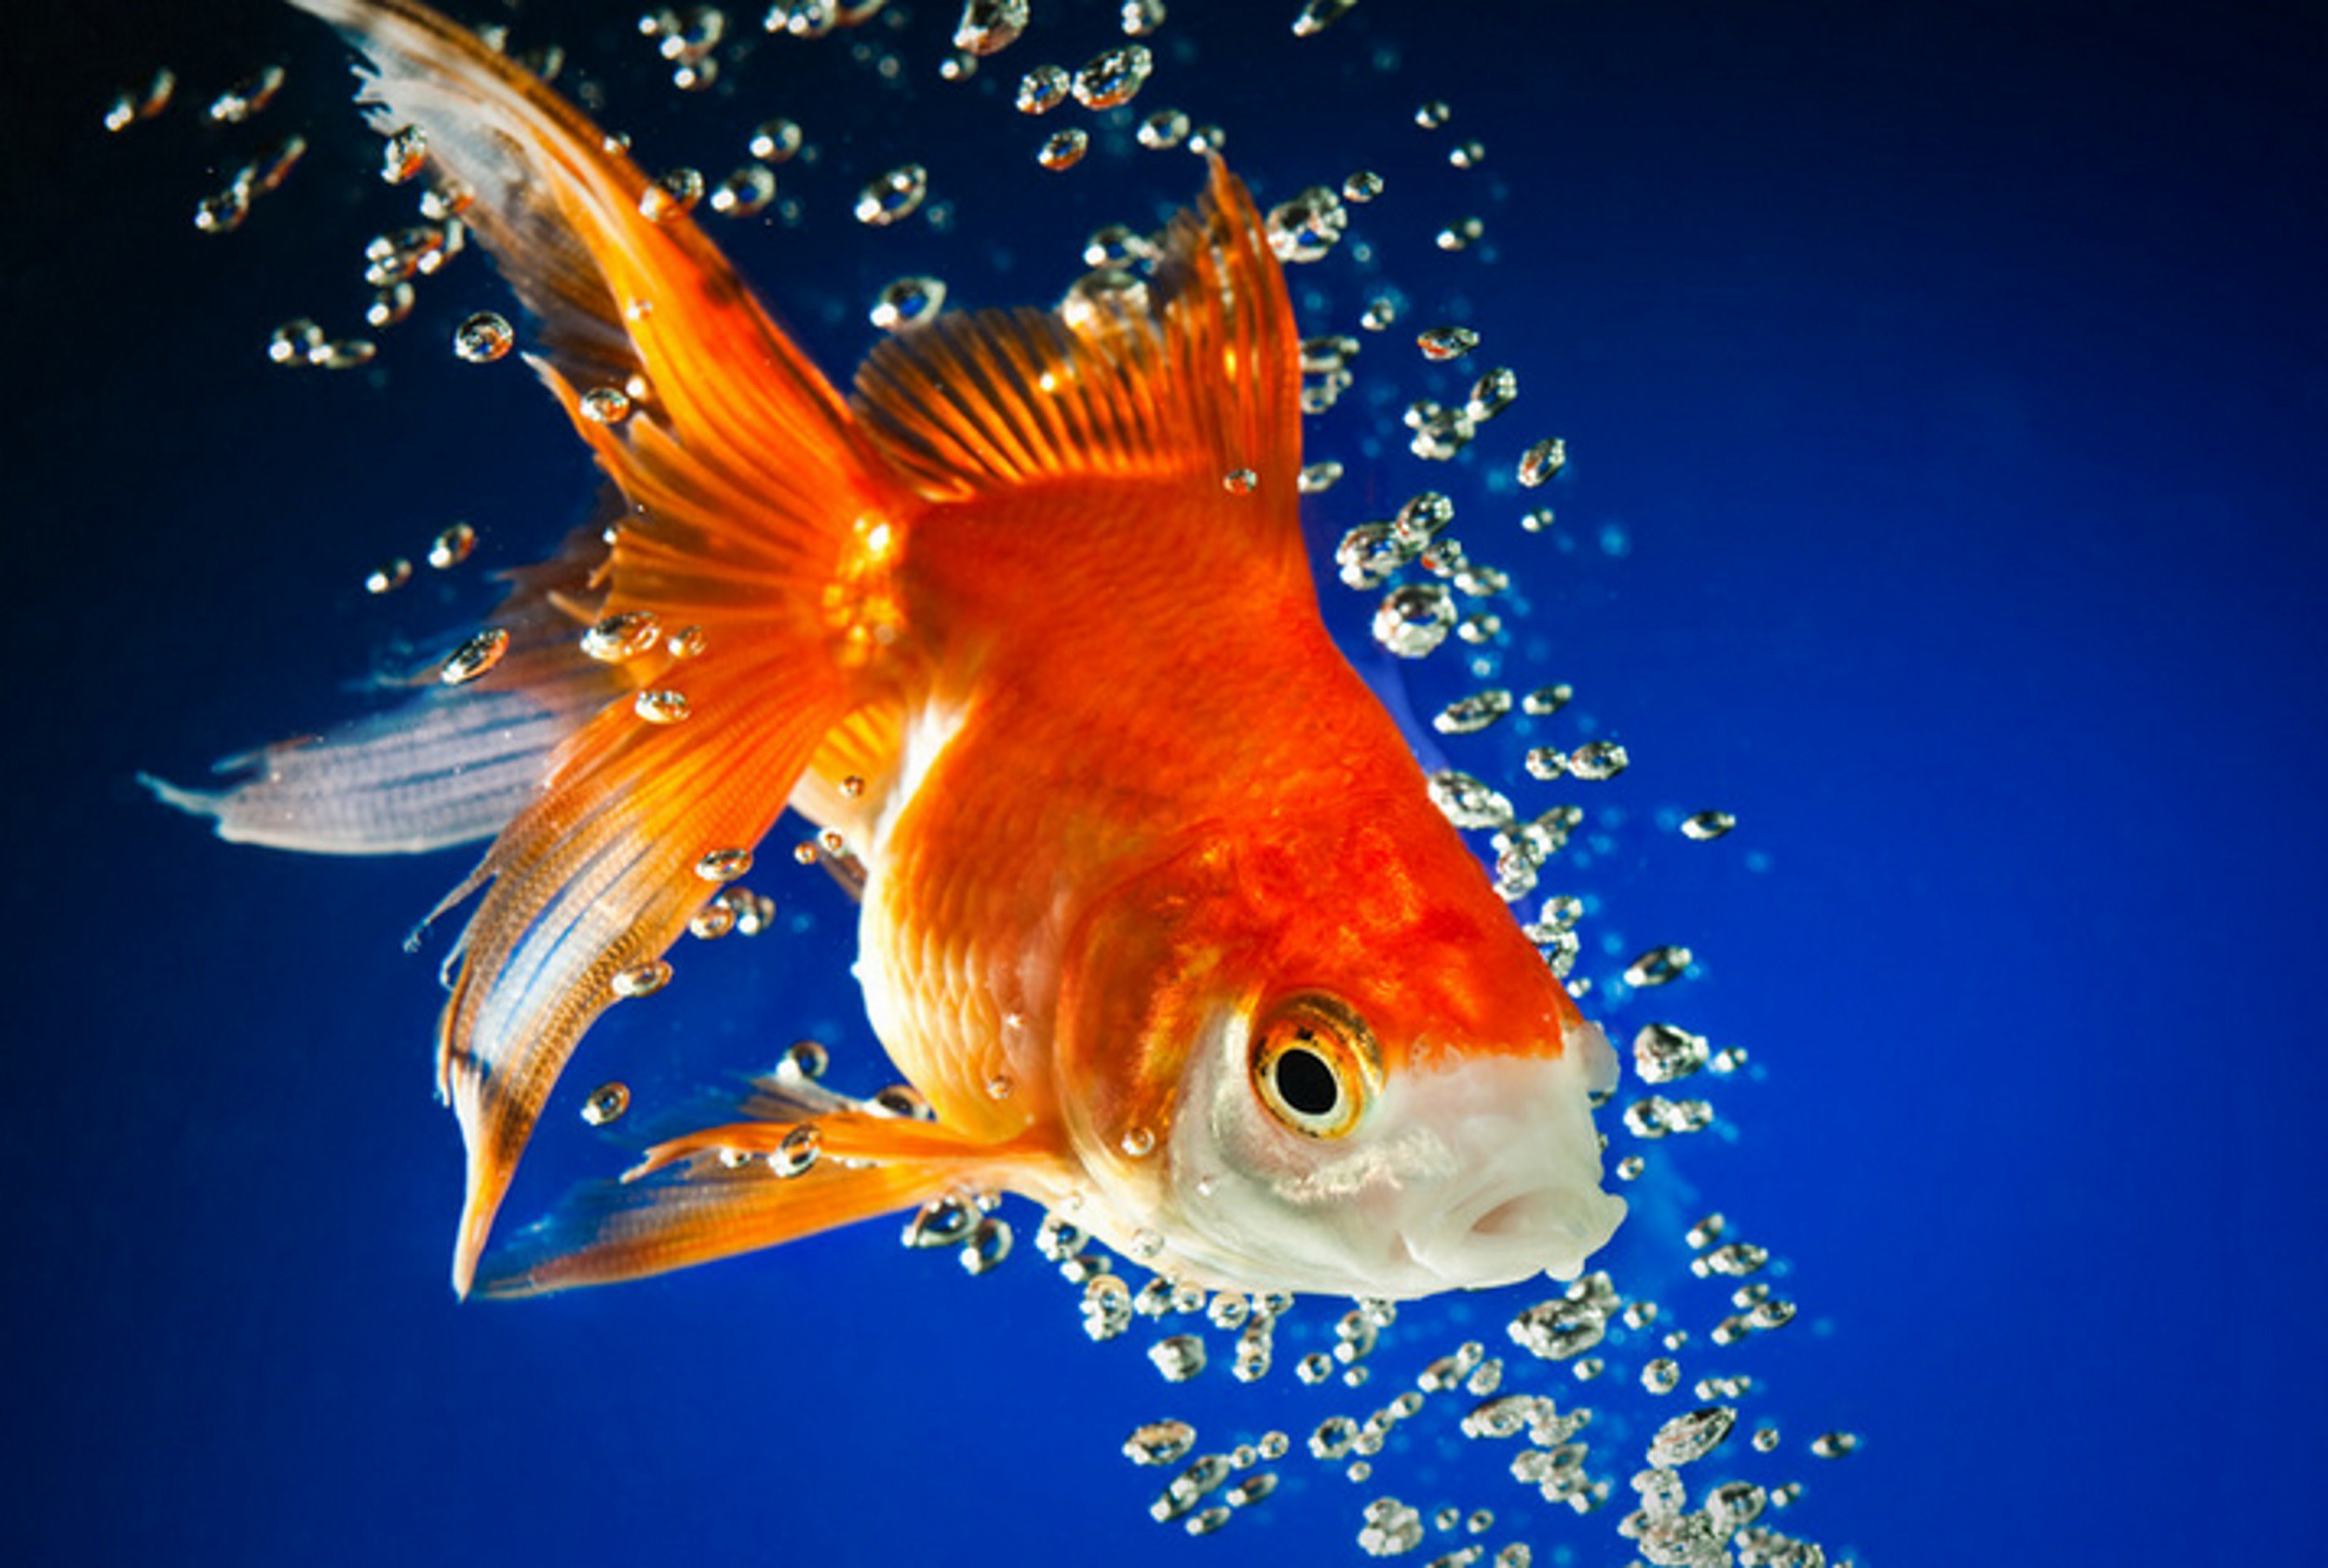 Photo of goldfish in water, surrounded by bubbles